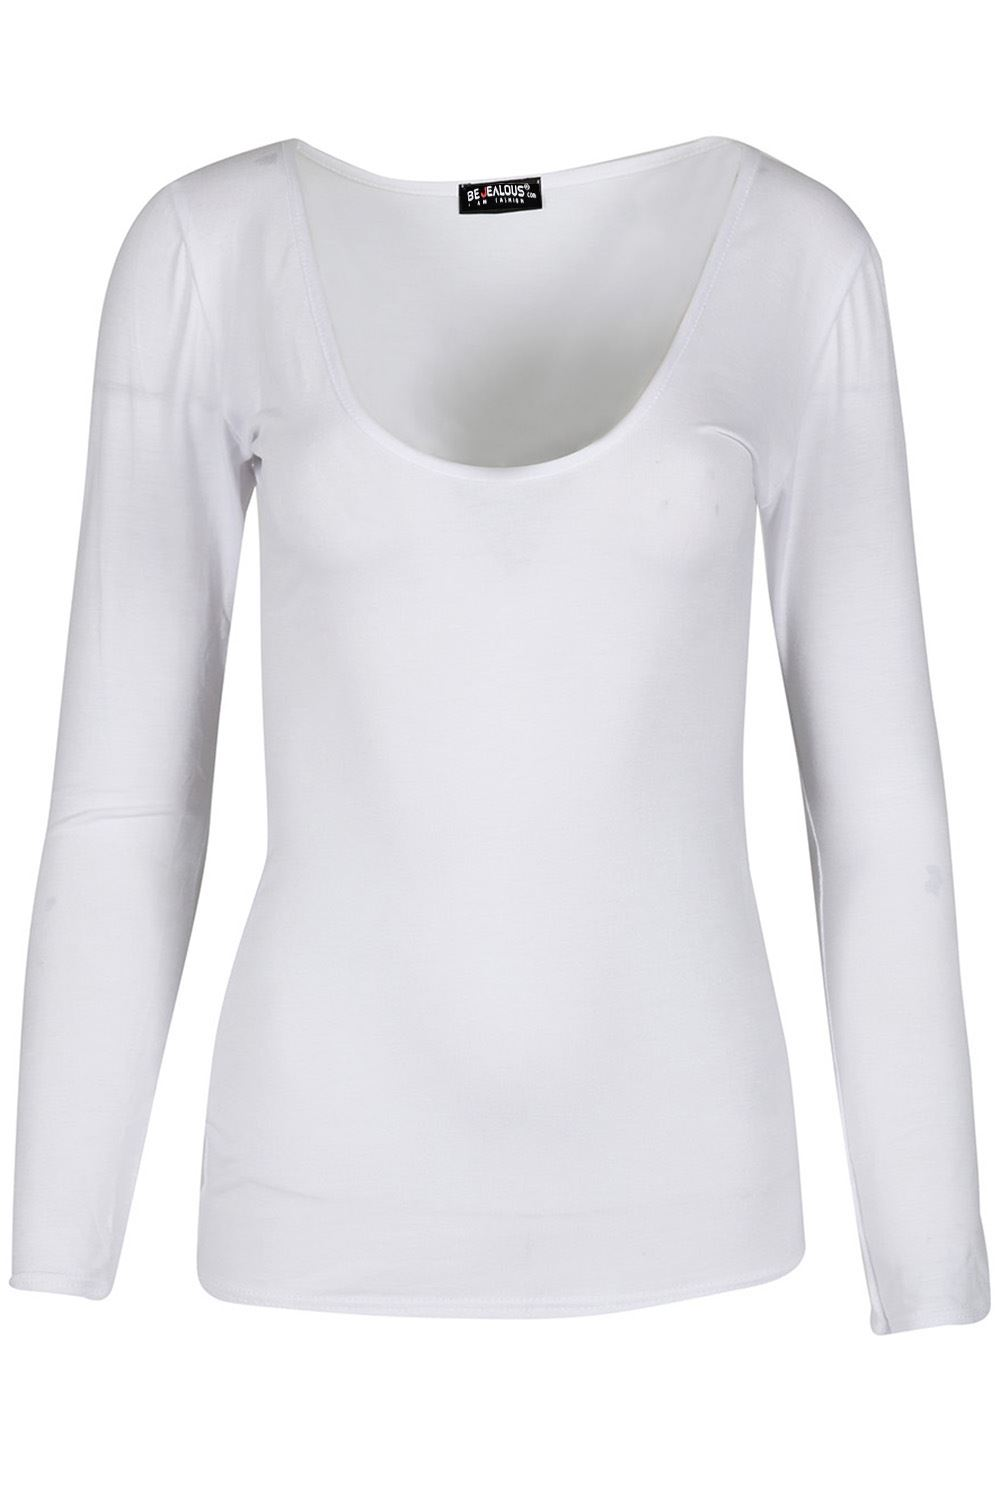 56ccd4370bc6 Womens V Neck Basic T Shirt Ladies Long Sleeve Stretchy Plain Jersey ...